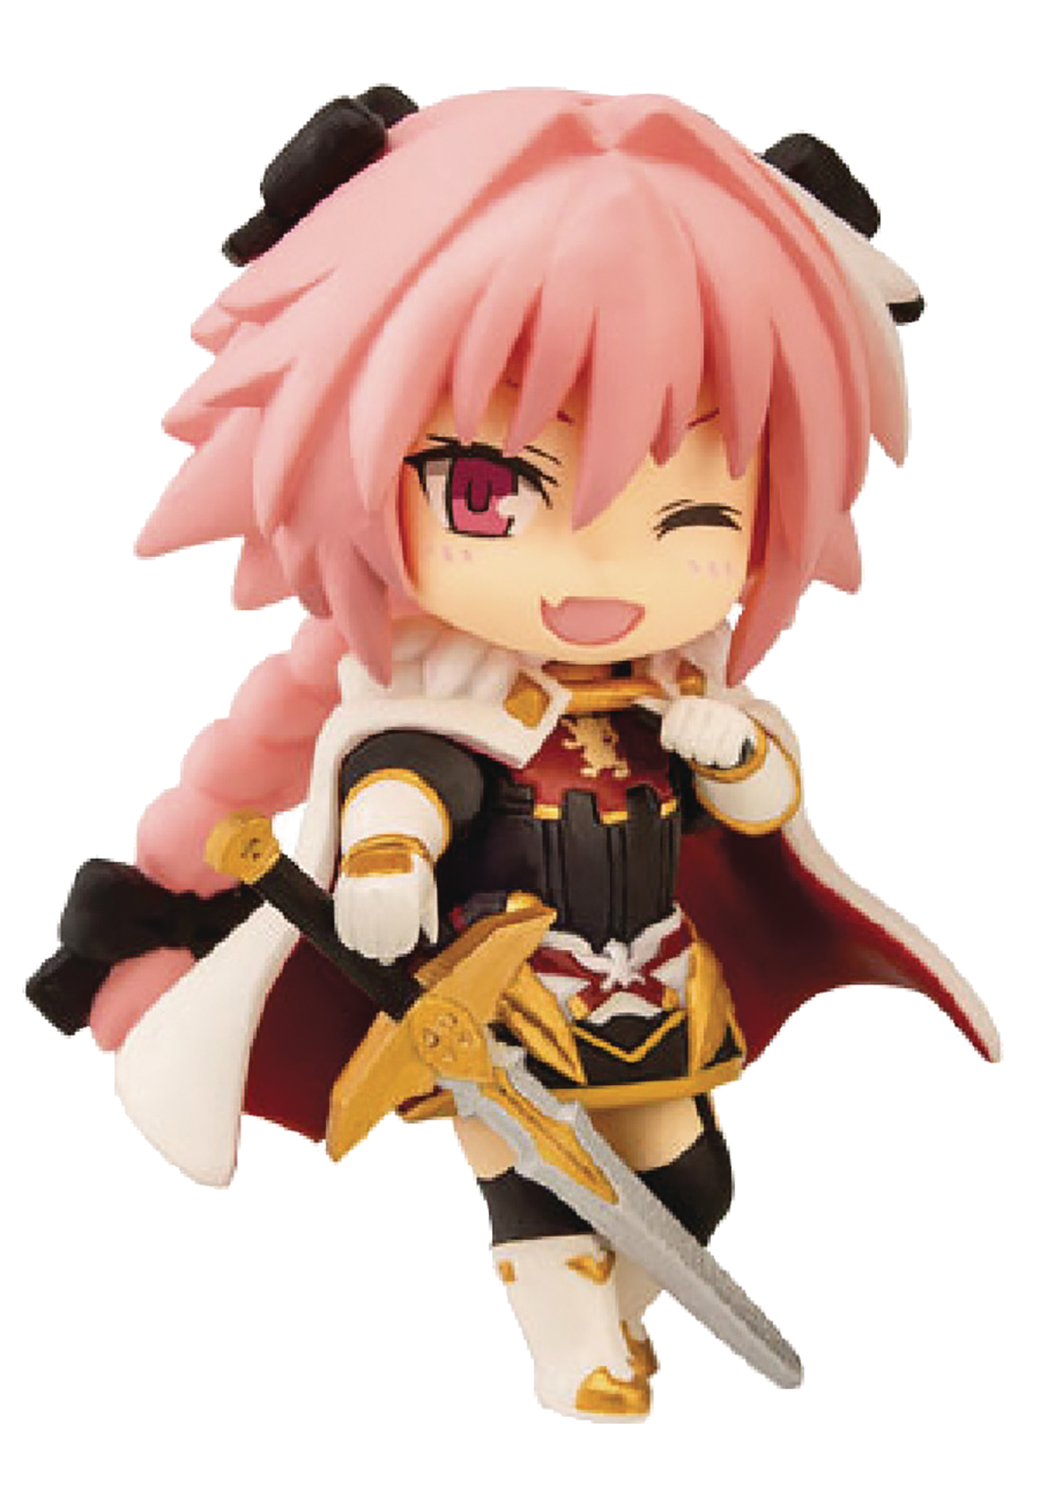 FATE APOCRYPHA NIITENGO PREMIUM RIDER OF BLACK FIG